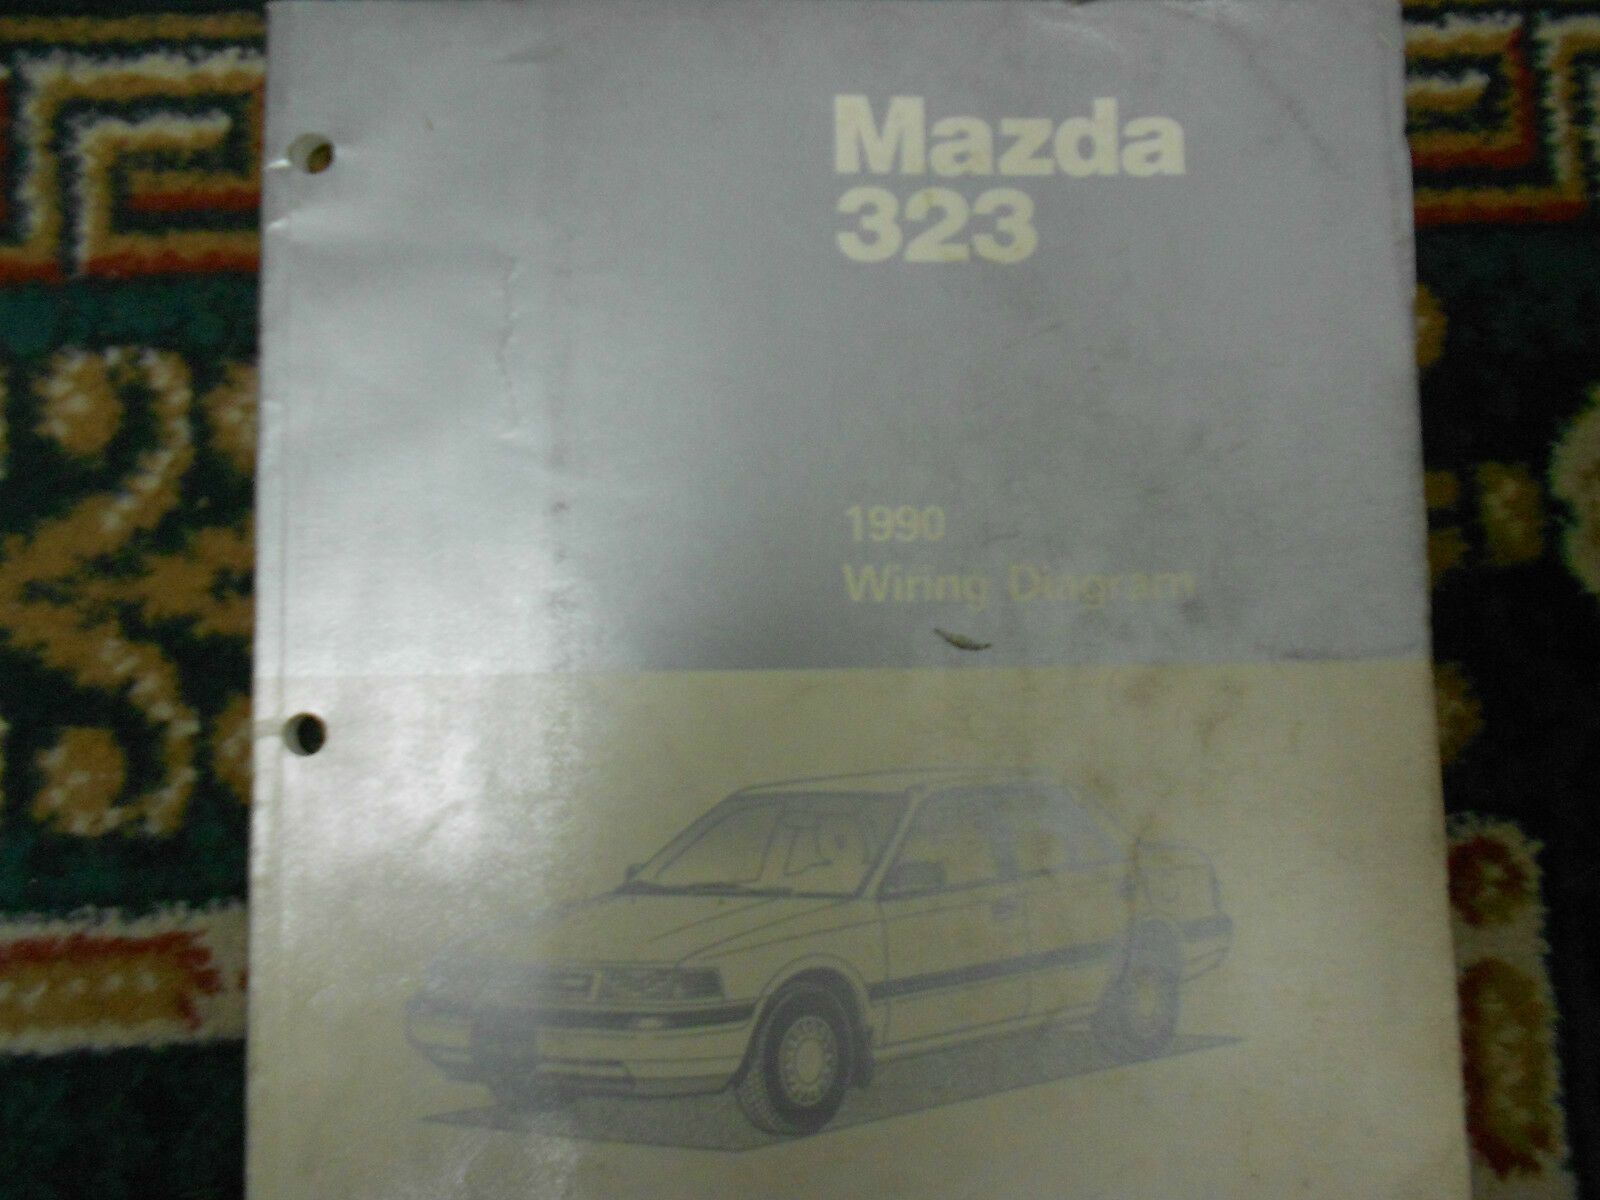 1990 Mazda 323 Wiring Diagram Electrical Service Repair Shop Manual 1988 B2600 1 Of 5only Available